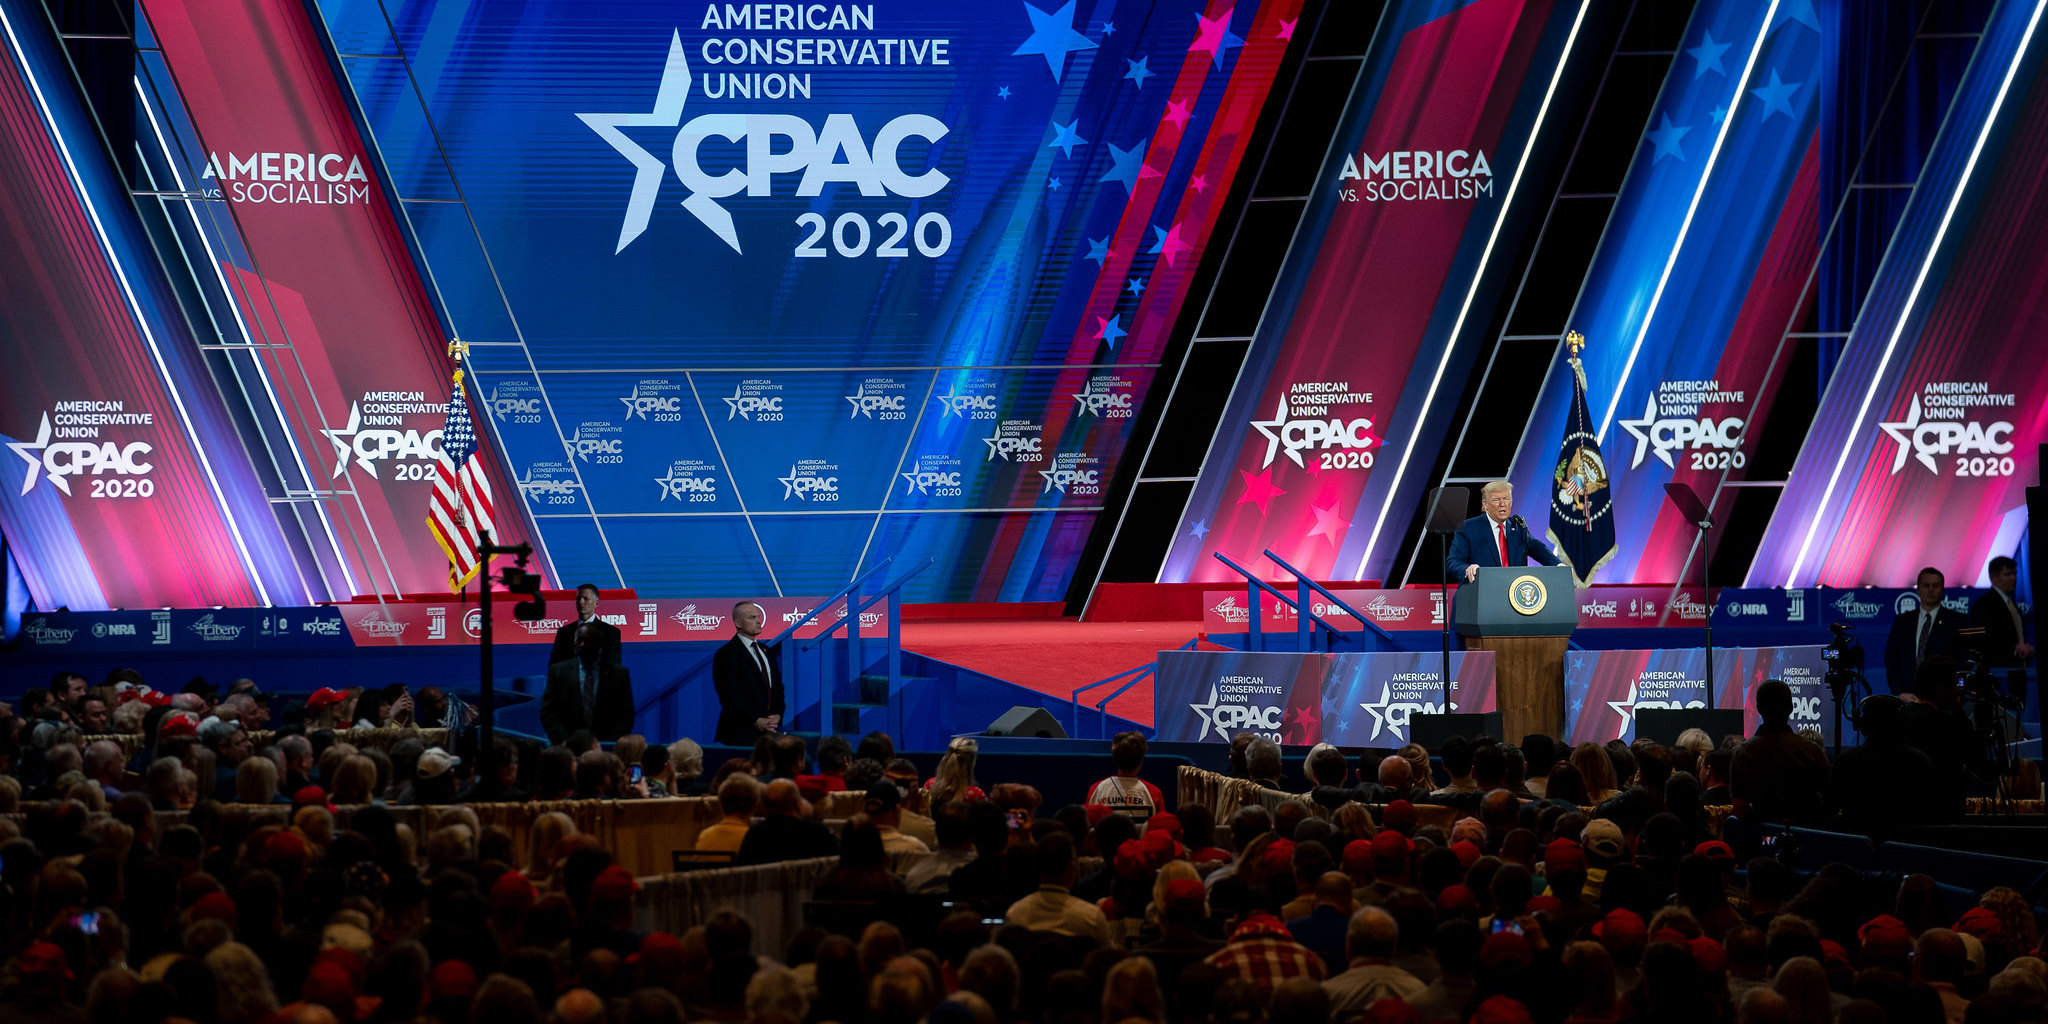 Meet me at CPAC 2021!